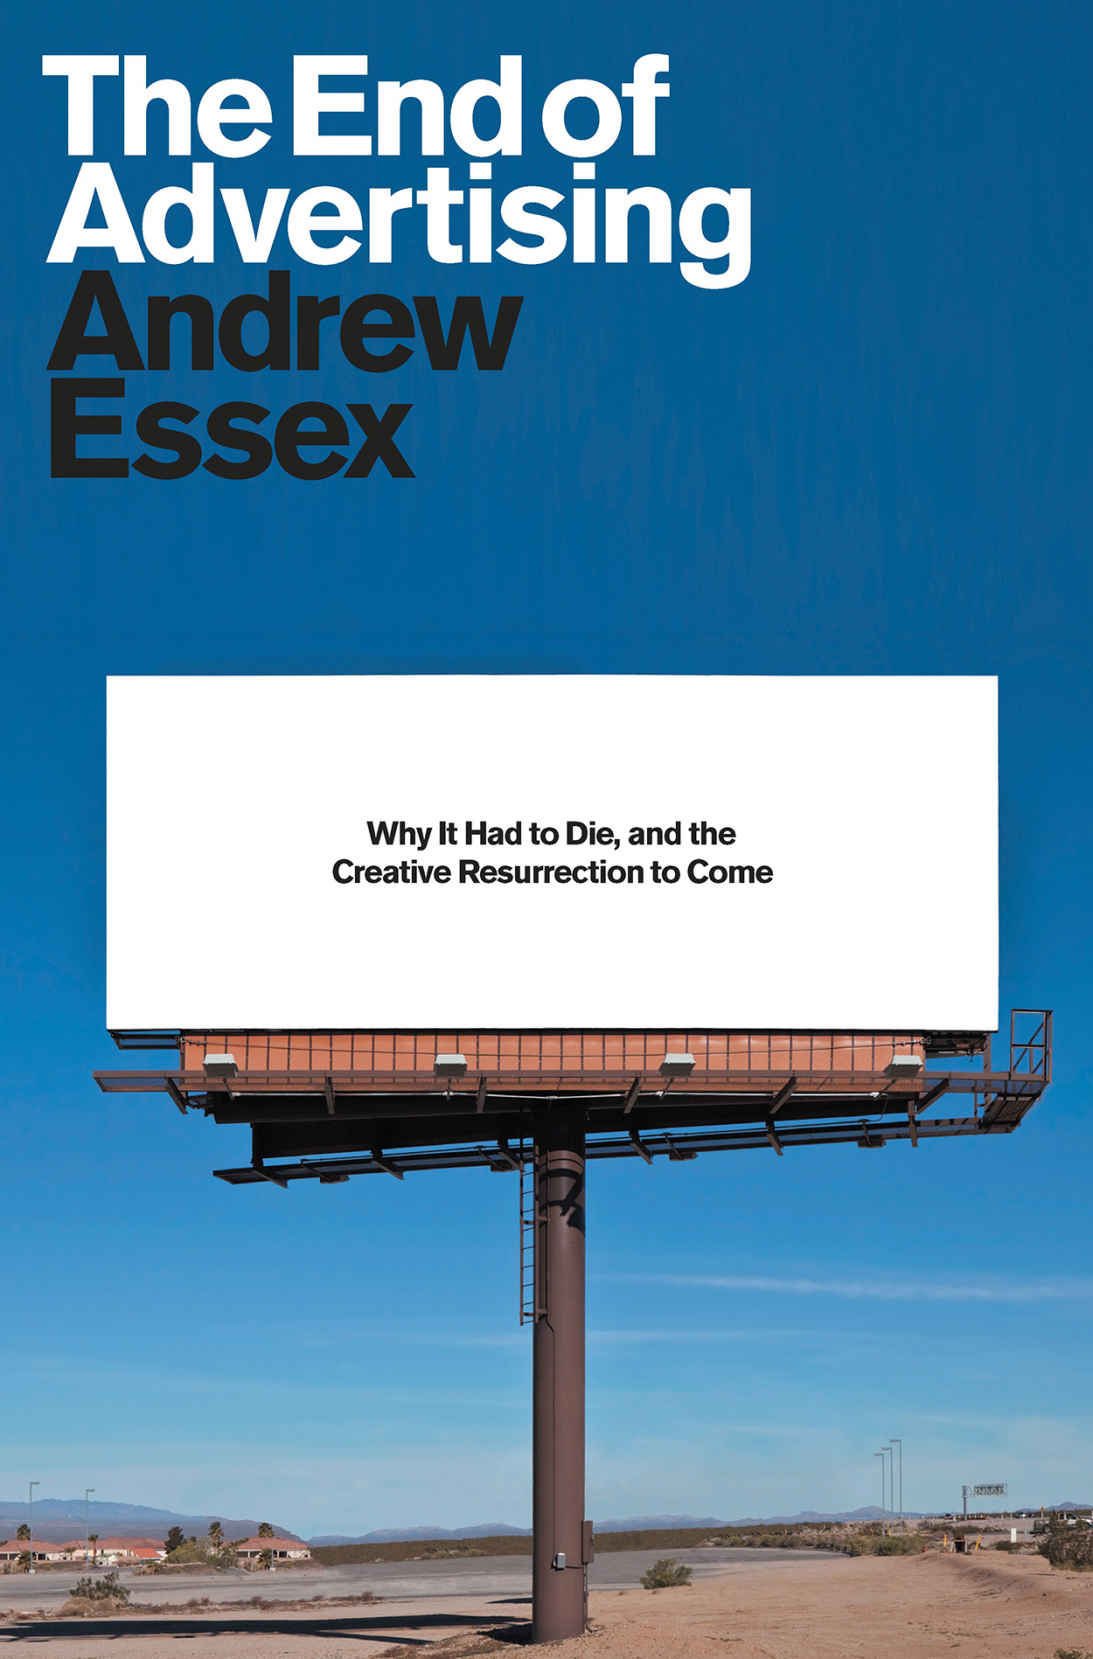 The End of Advertising – Why It Had to Die, and the Creative Resurrection to Come by Andrew Essex